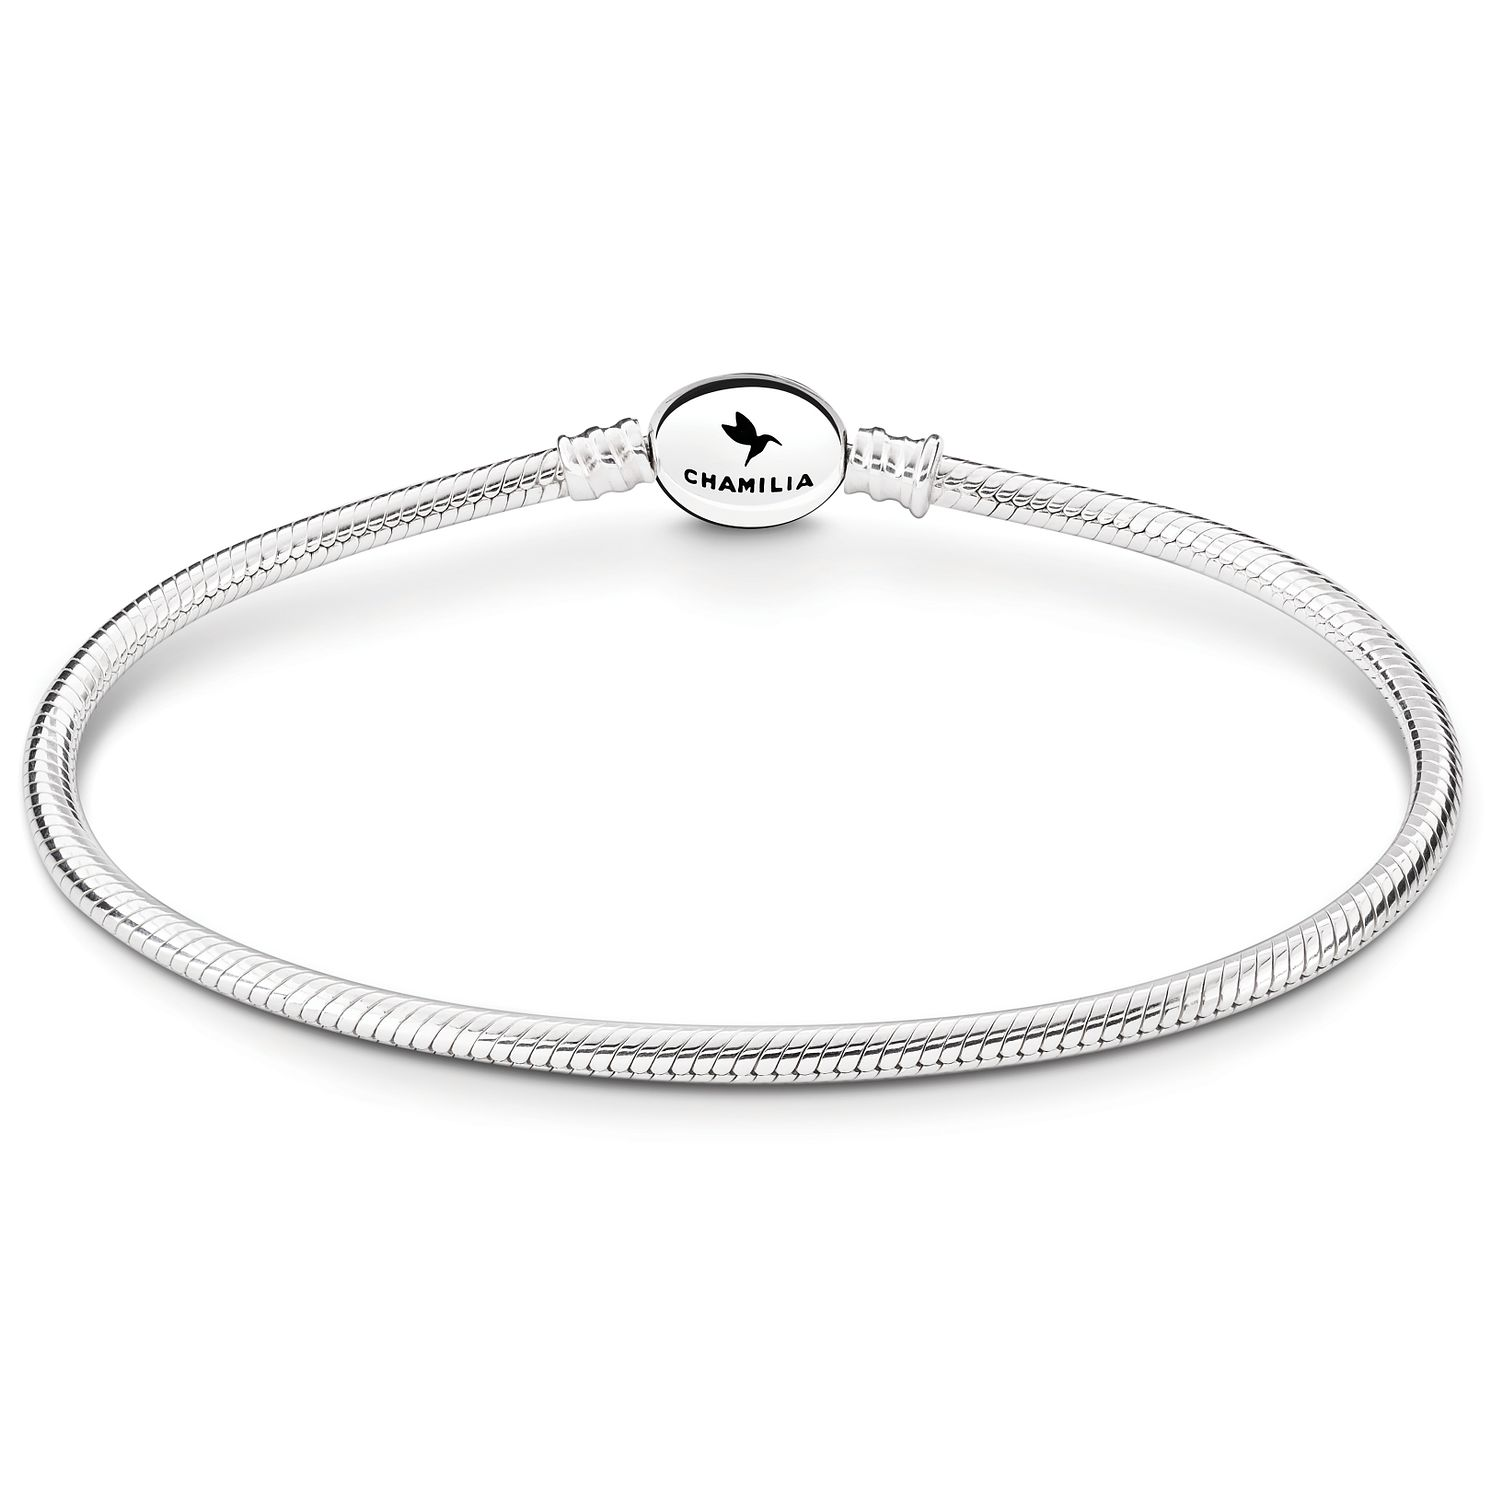 mail silver by bracelet sterling for milan from bracelets htm list women mode